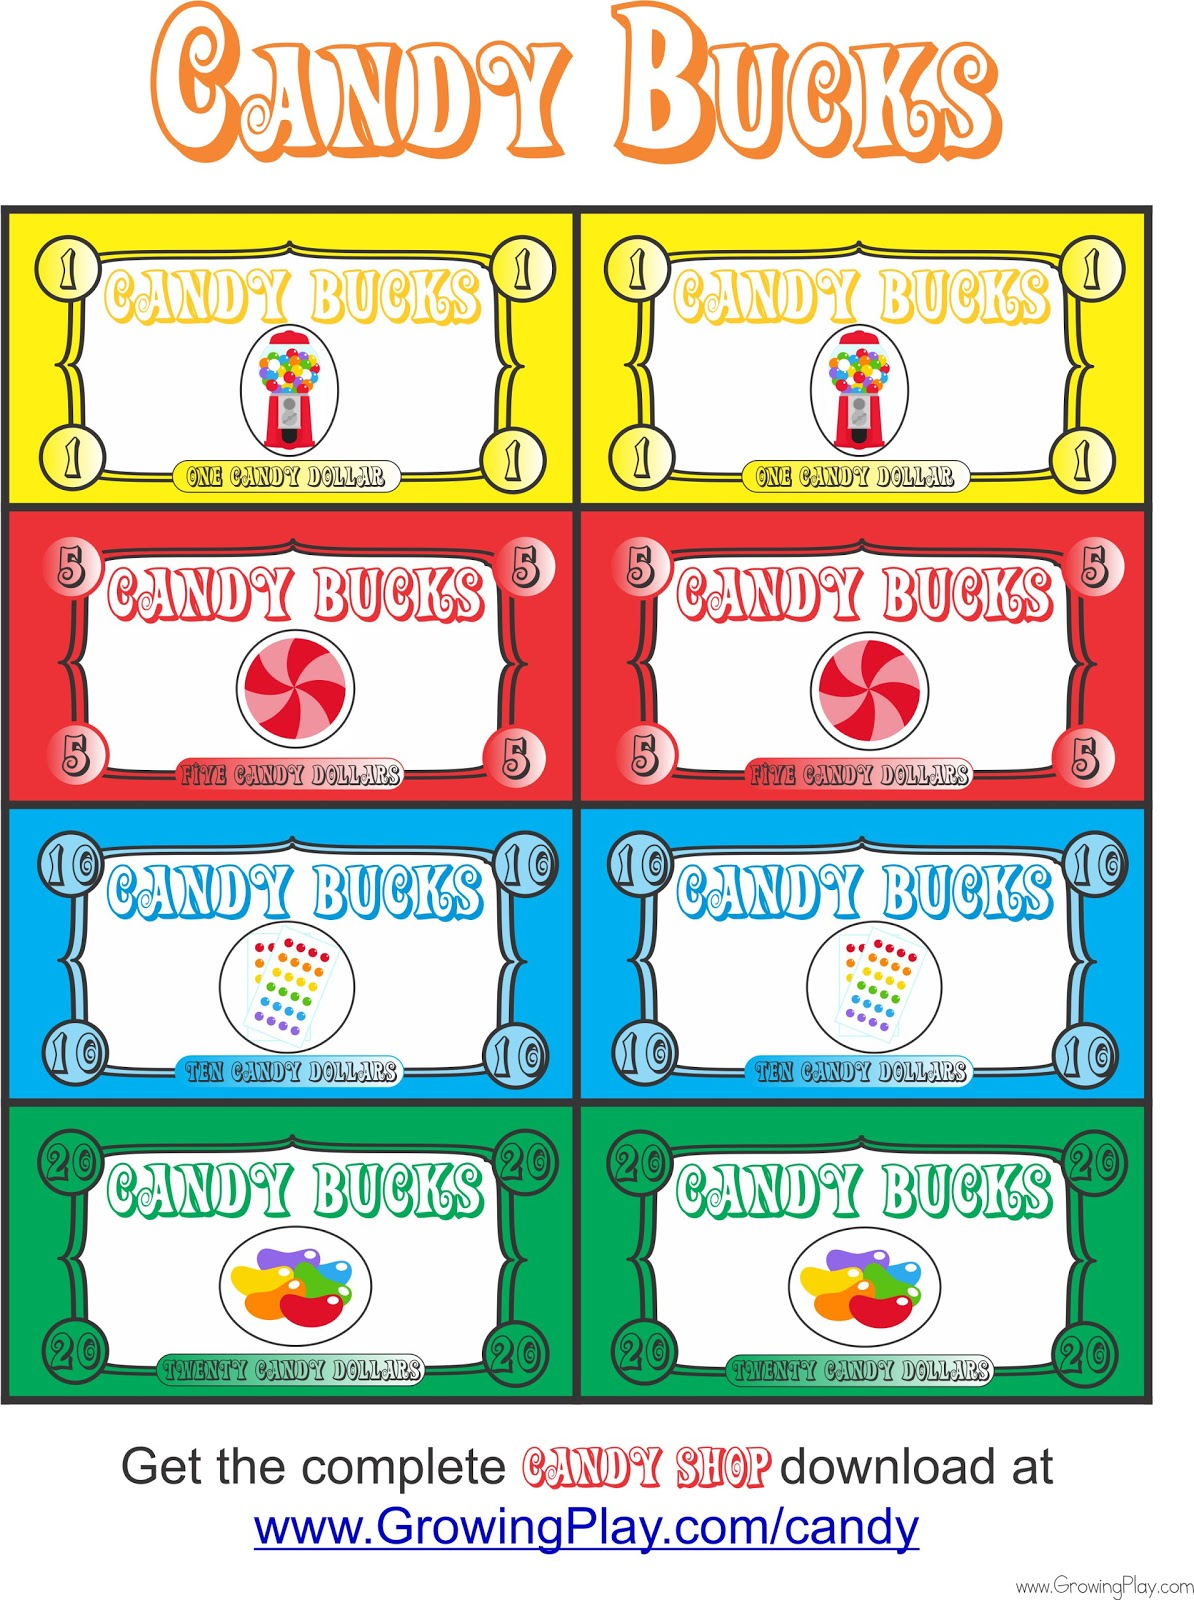 Free Candy Cane Template Printables Clip Art Decorations: Growing Play: Free Candy Shop Bucks To Play Pretend